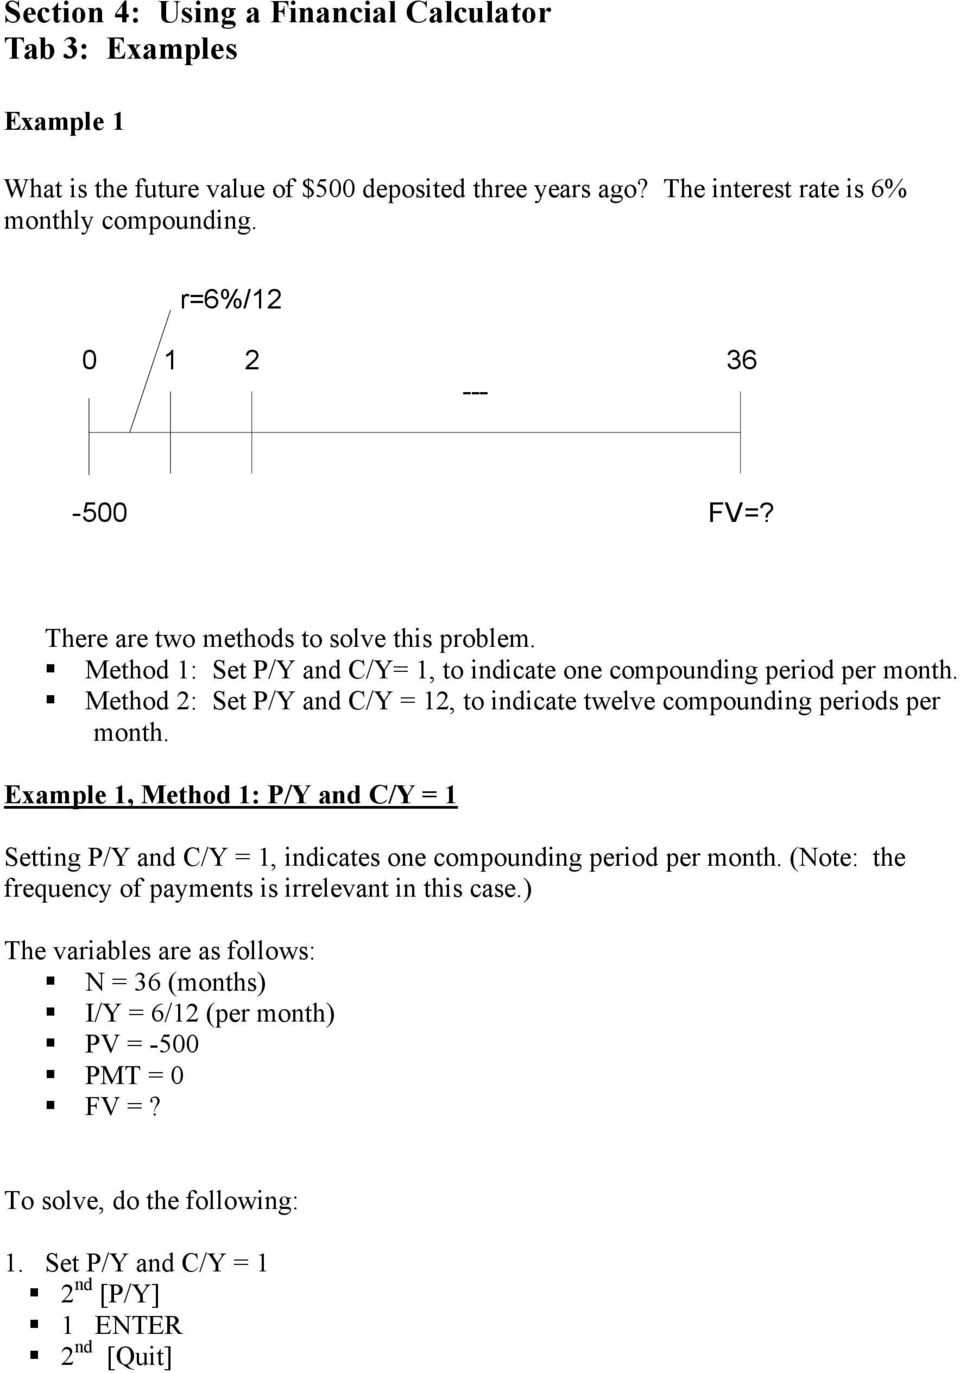 Method 2: Set P/Y and C/Y = 12, to indicate twelve compounding periods per month.